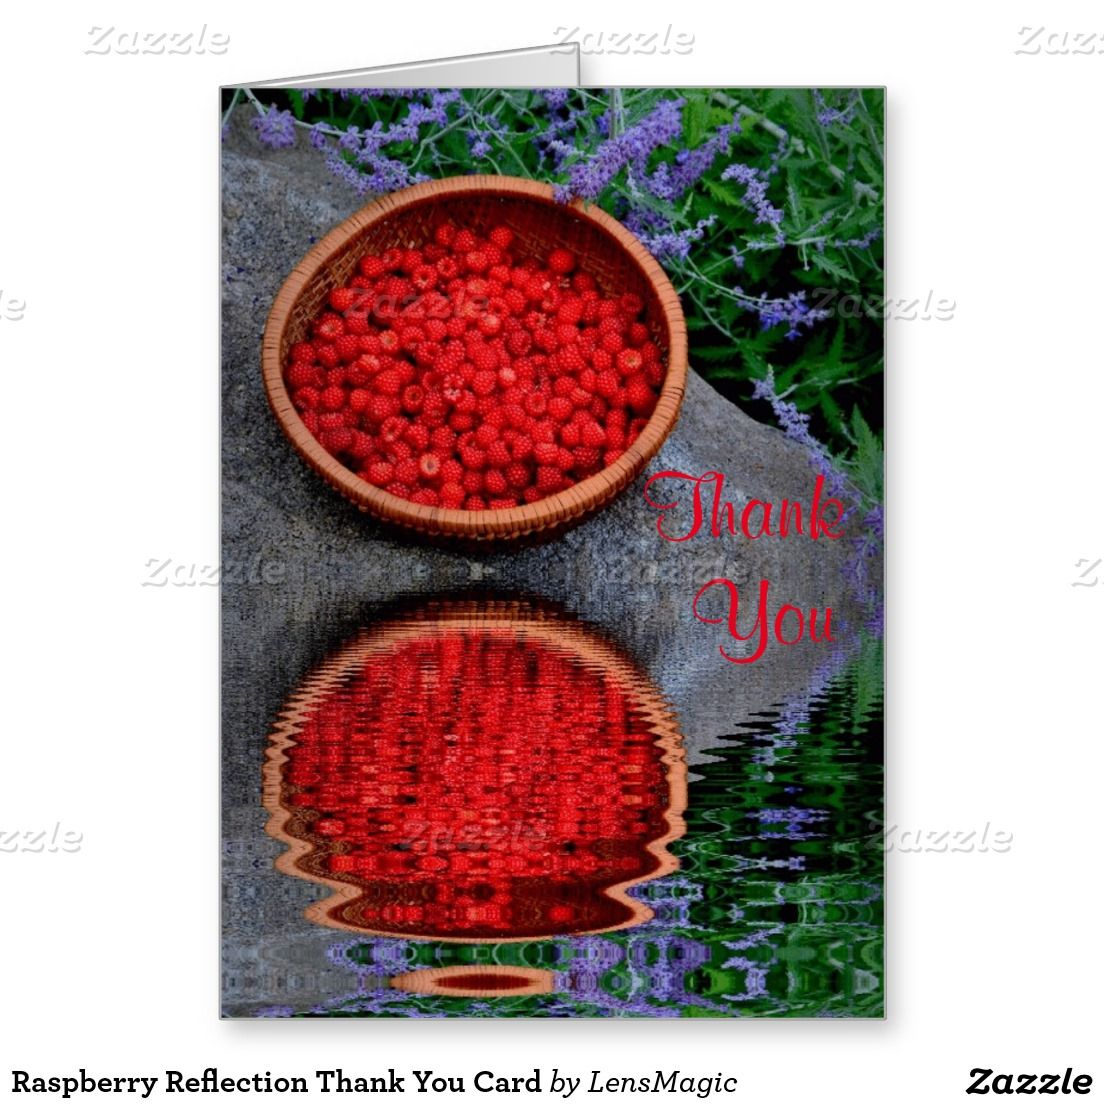 Raspberry Reflection Thank You Card Thank You Cards Pinterest